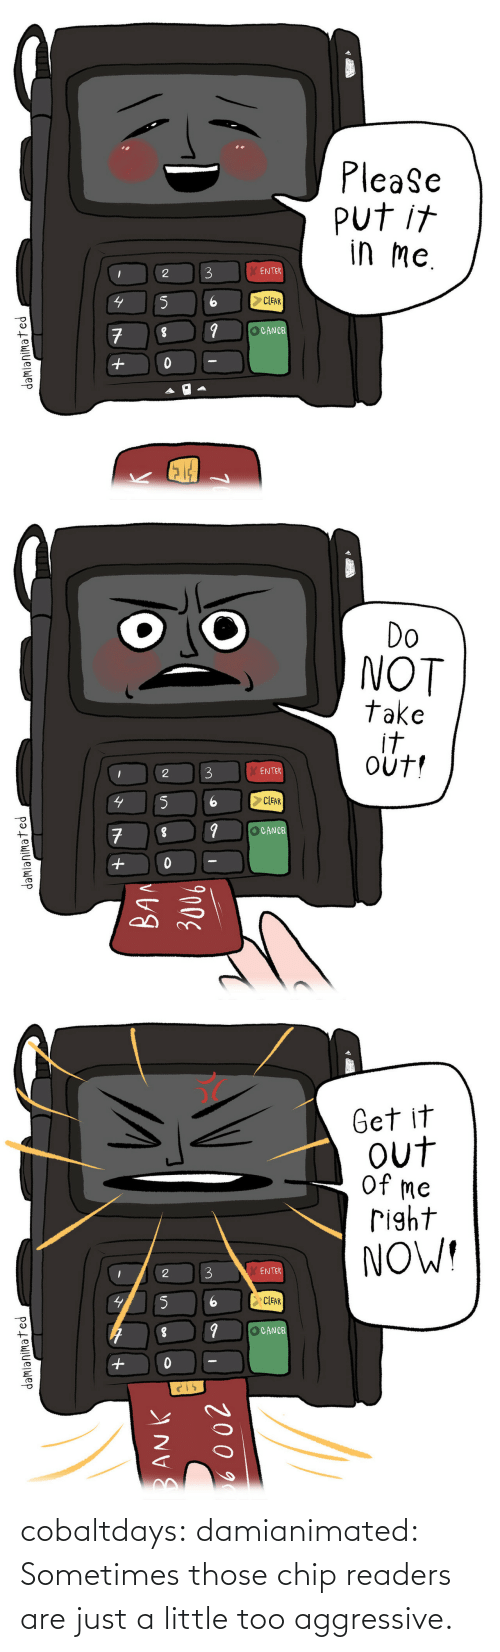 Aggressive: cobaltdays: damianimated: Sometimes those chip readers are just a little too aggressive.